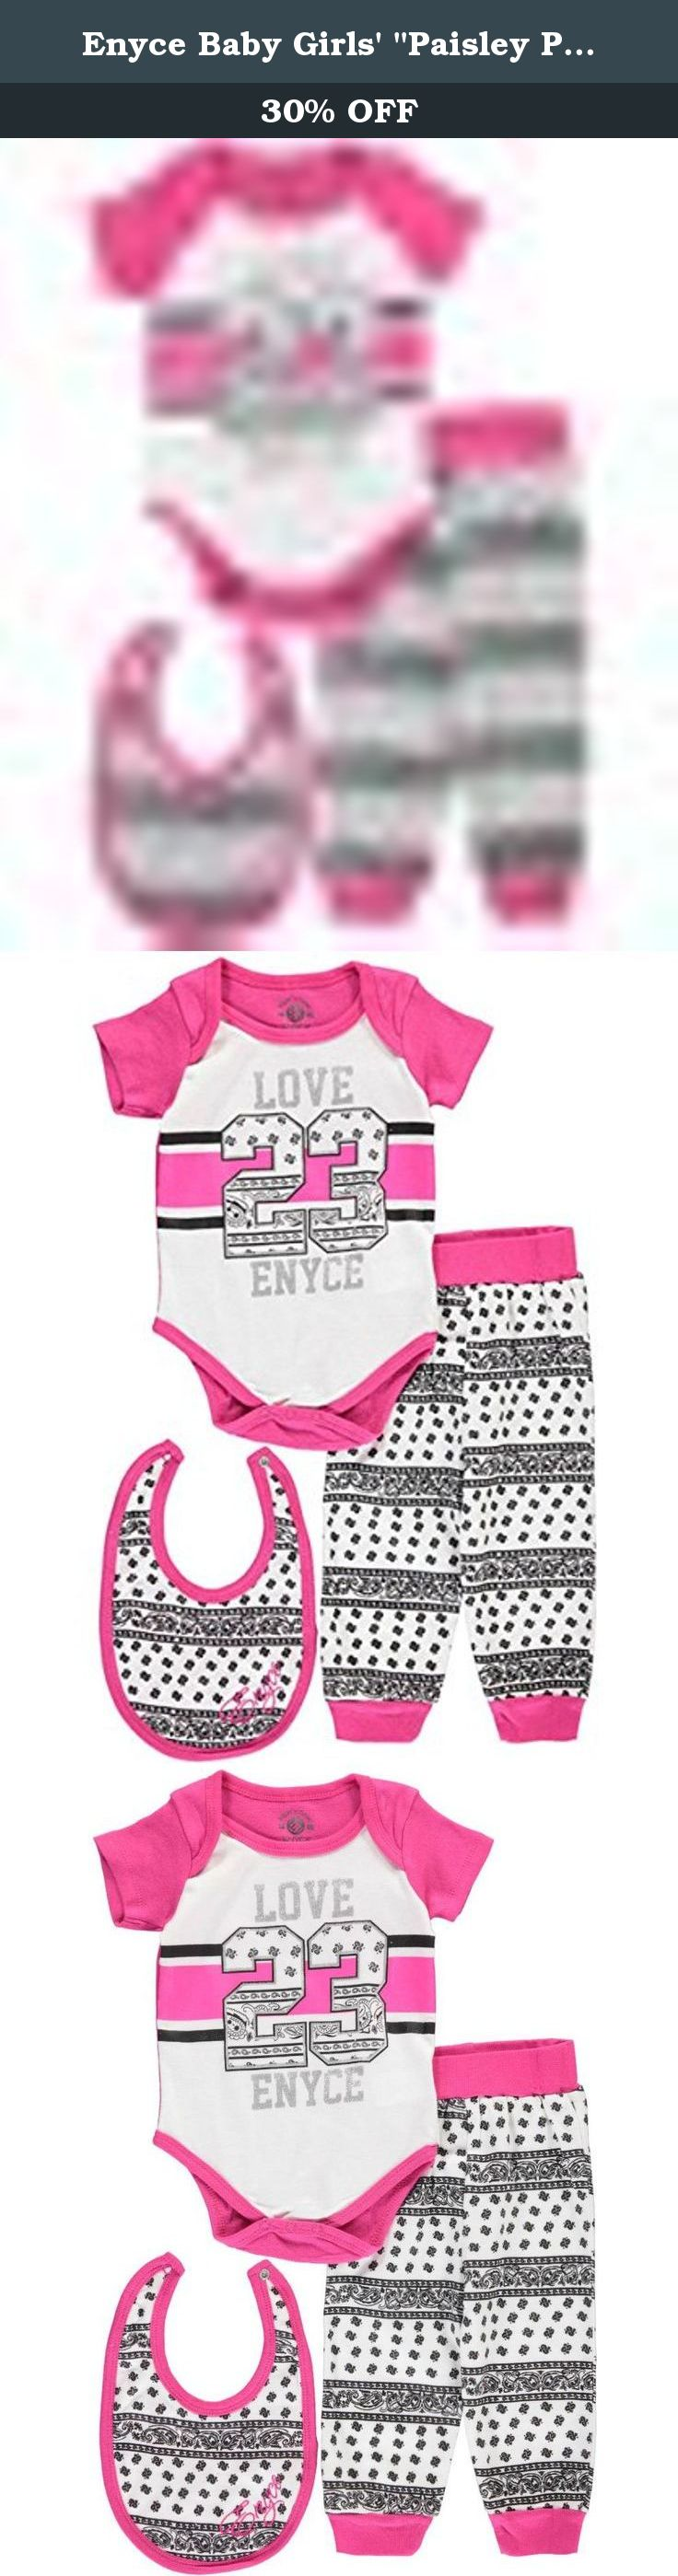 """Enyce Baby Girls' """"Paisley Prettified"""" 3-Piece Layette Set - fuchsia, 6 - 9. They'll love the soft construction and fun accents of this Enyce 3-piece layette set! Enyce 3-piece layette set Short-sleeved bodysuit with bandana print (100% cotton) Joggers with elastic waistband (100% cotton) Bib with embroidery and snap closure (100% cotton) Machine wash cold, inside out Imported."""